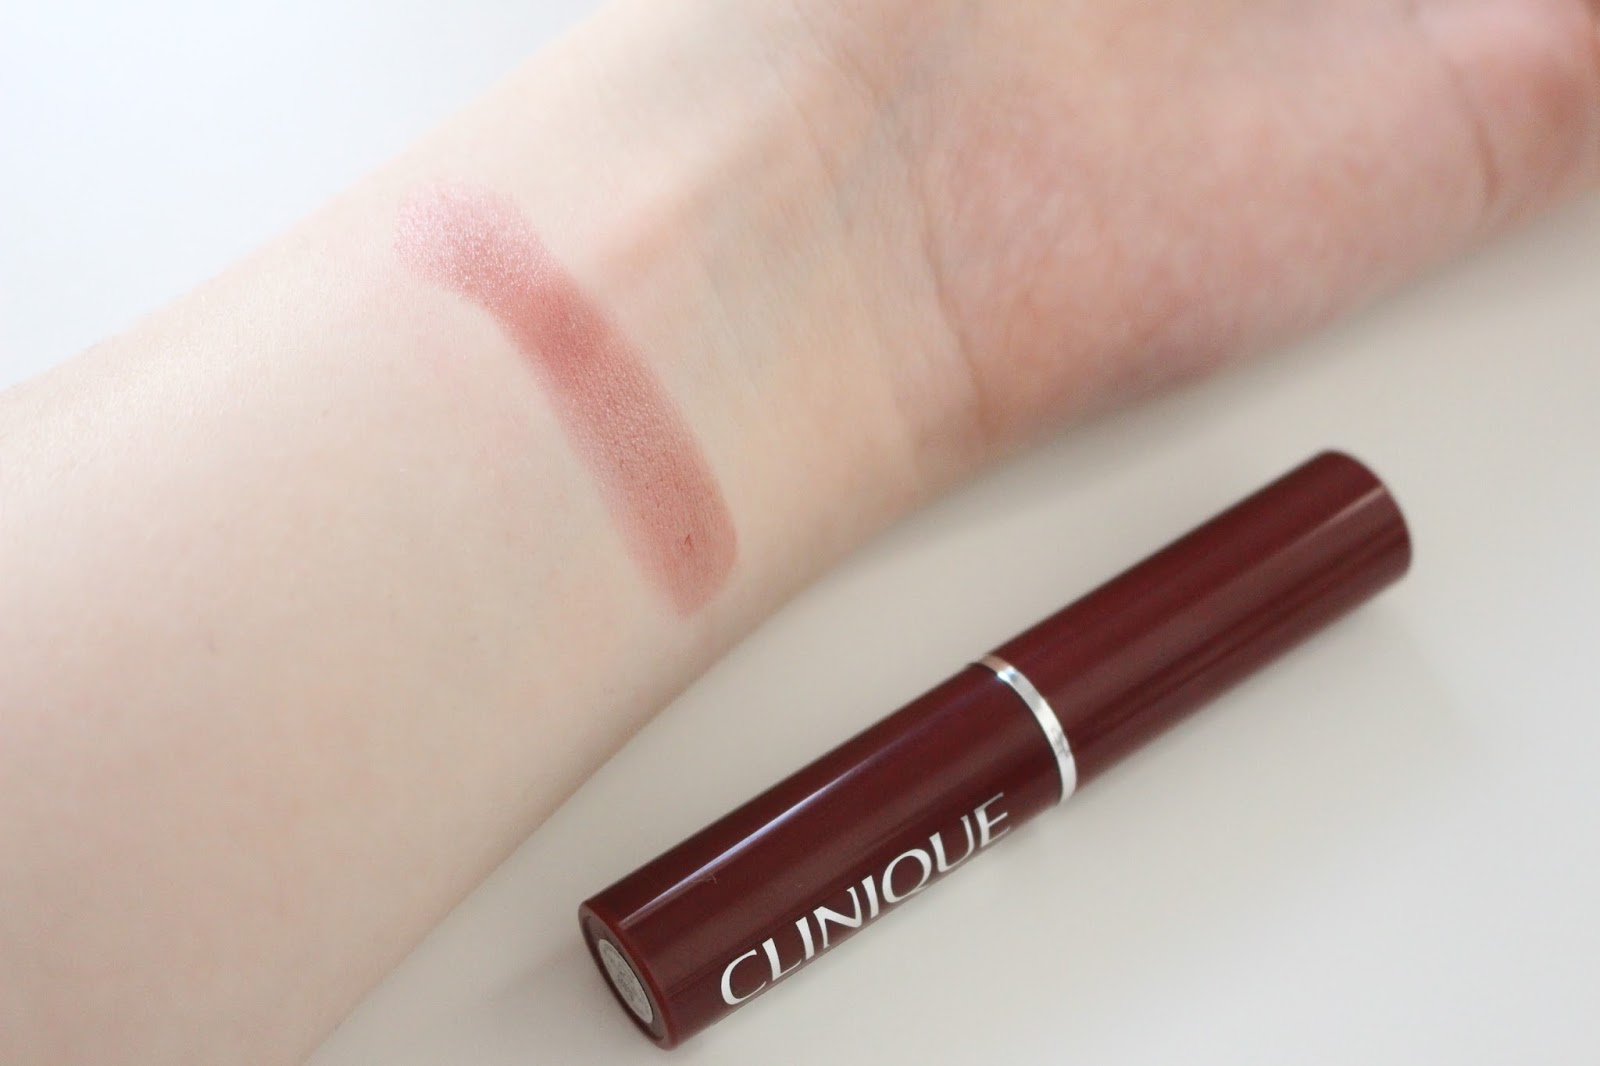 Clinique Black Honey Balm Swatches